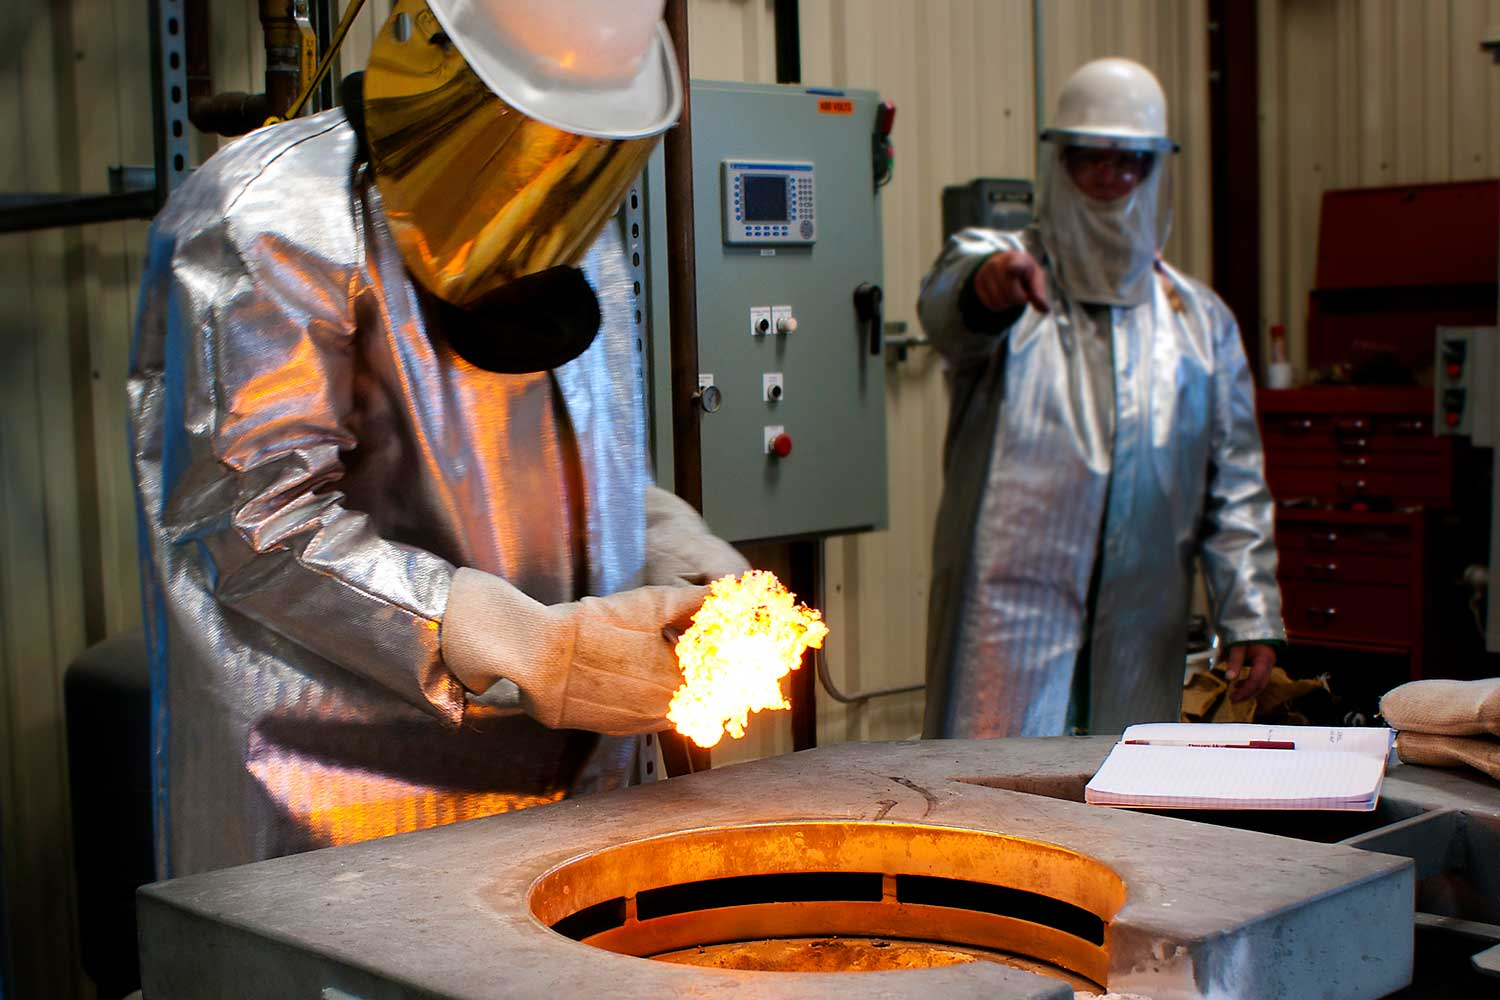 A Material Science student works with molten material in a lab and is wearing a fire suit.